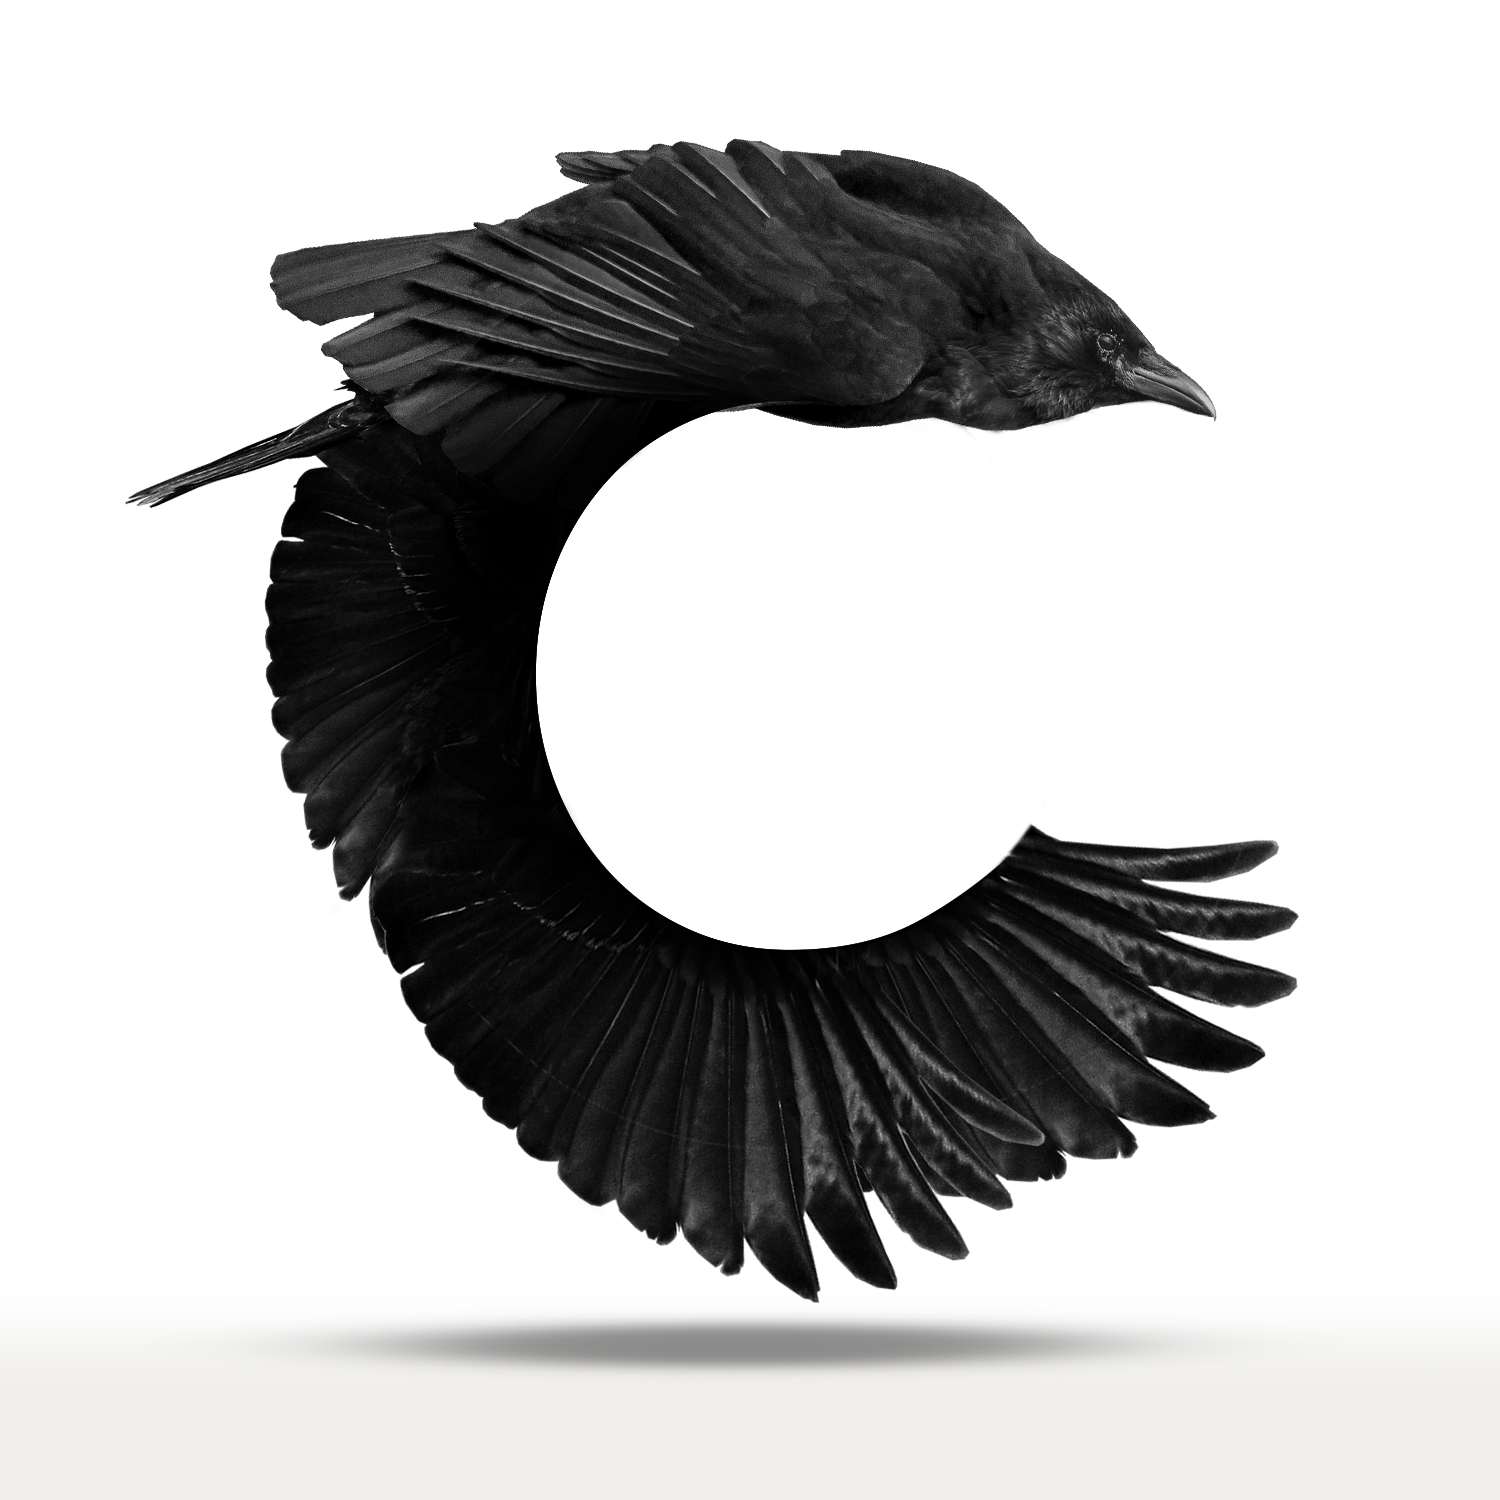 C is for Crow